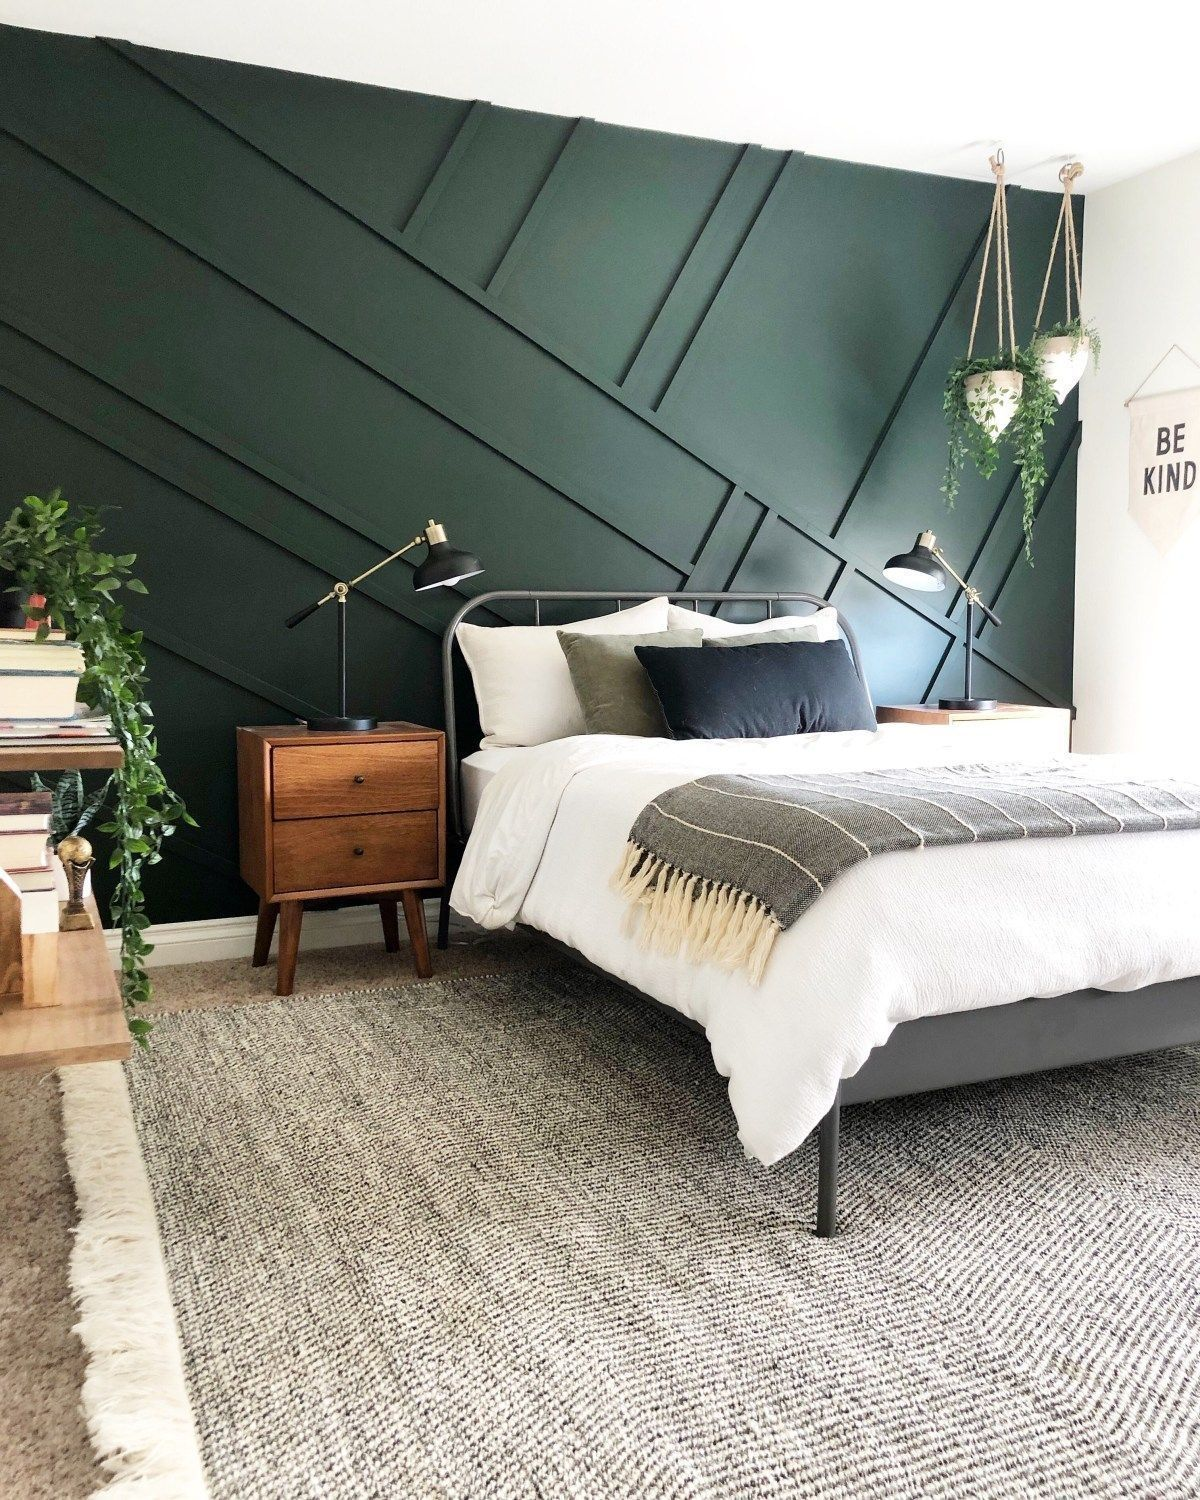 20 Cool Master Bedroom Design Ideas To Inspire You Bedroom Cool Design Ideas In 2020